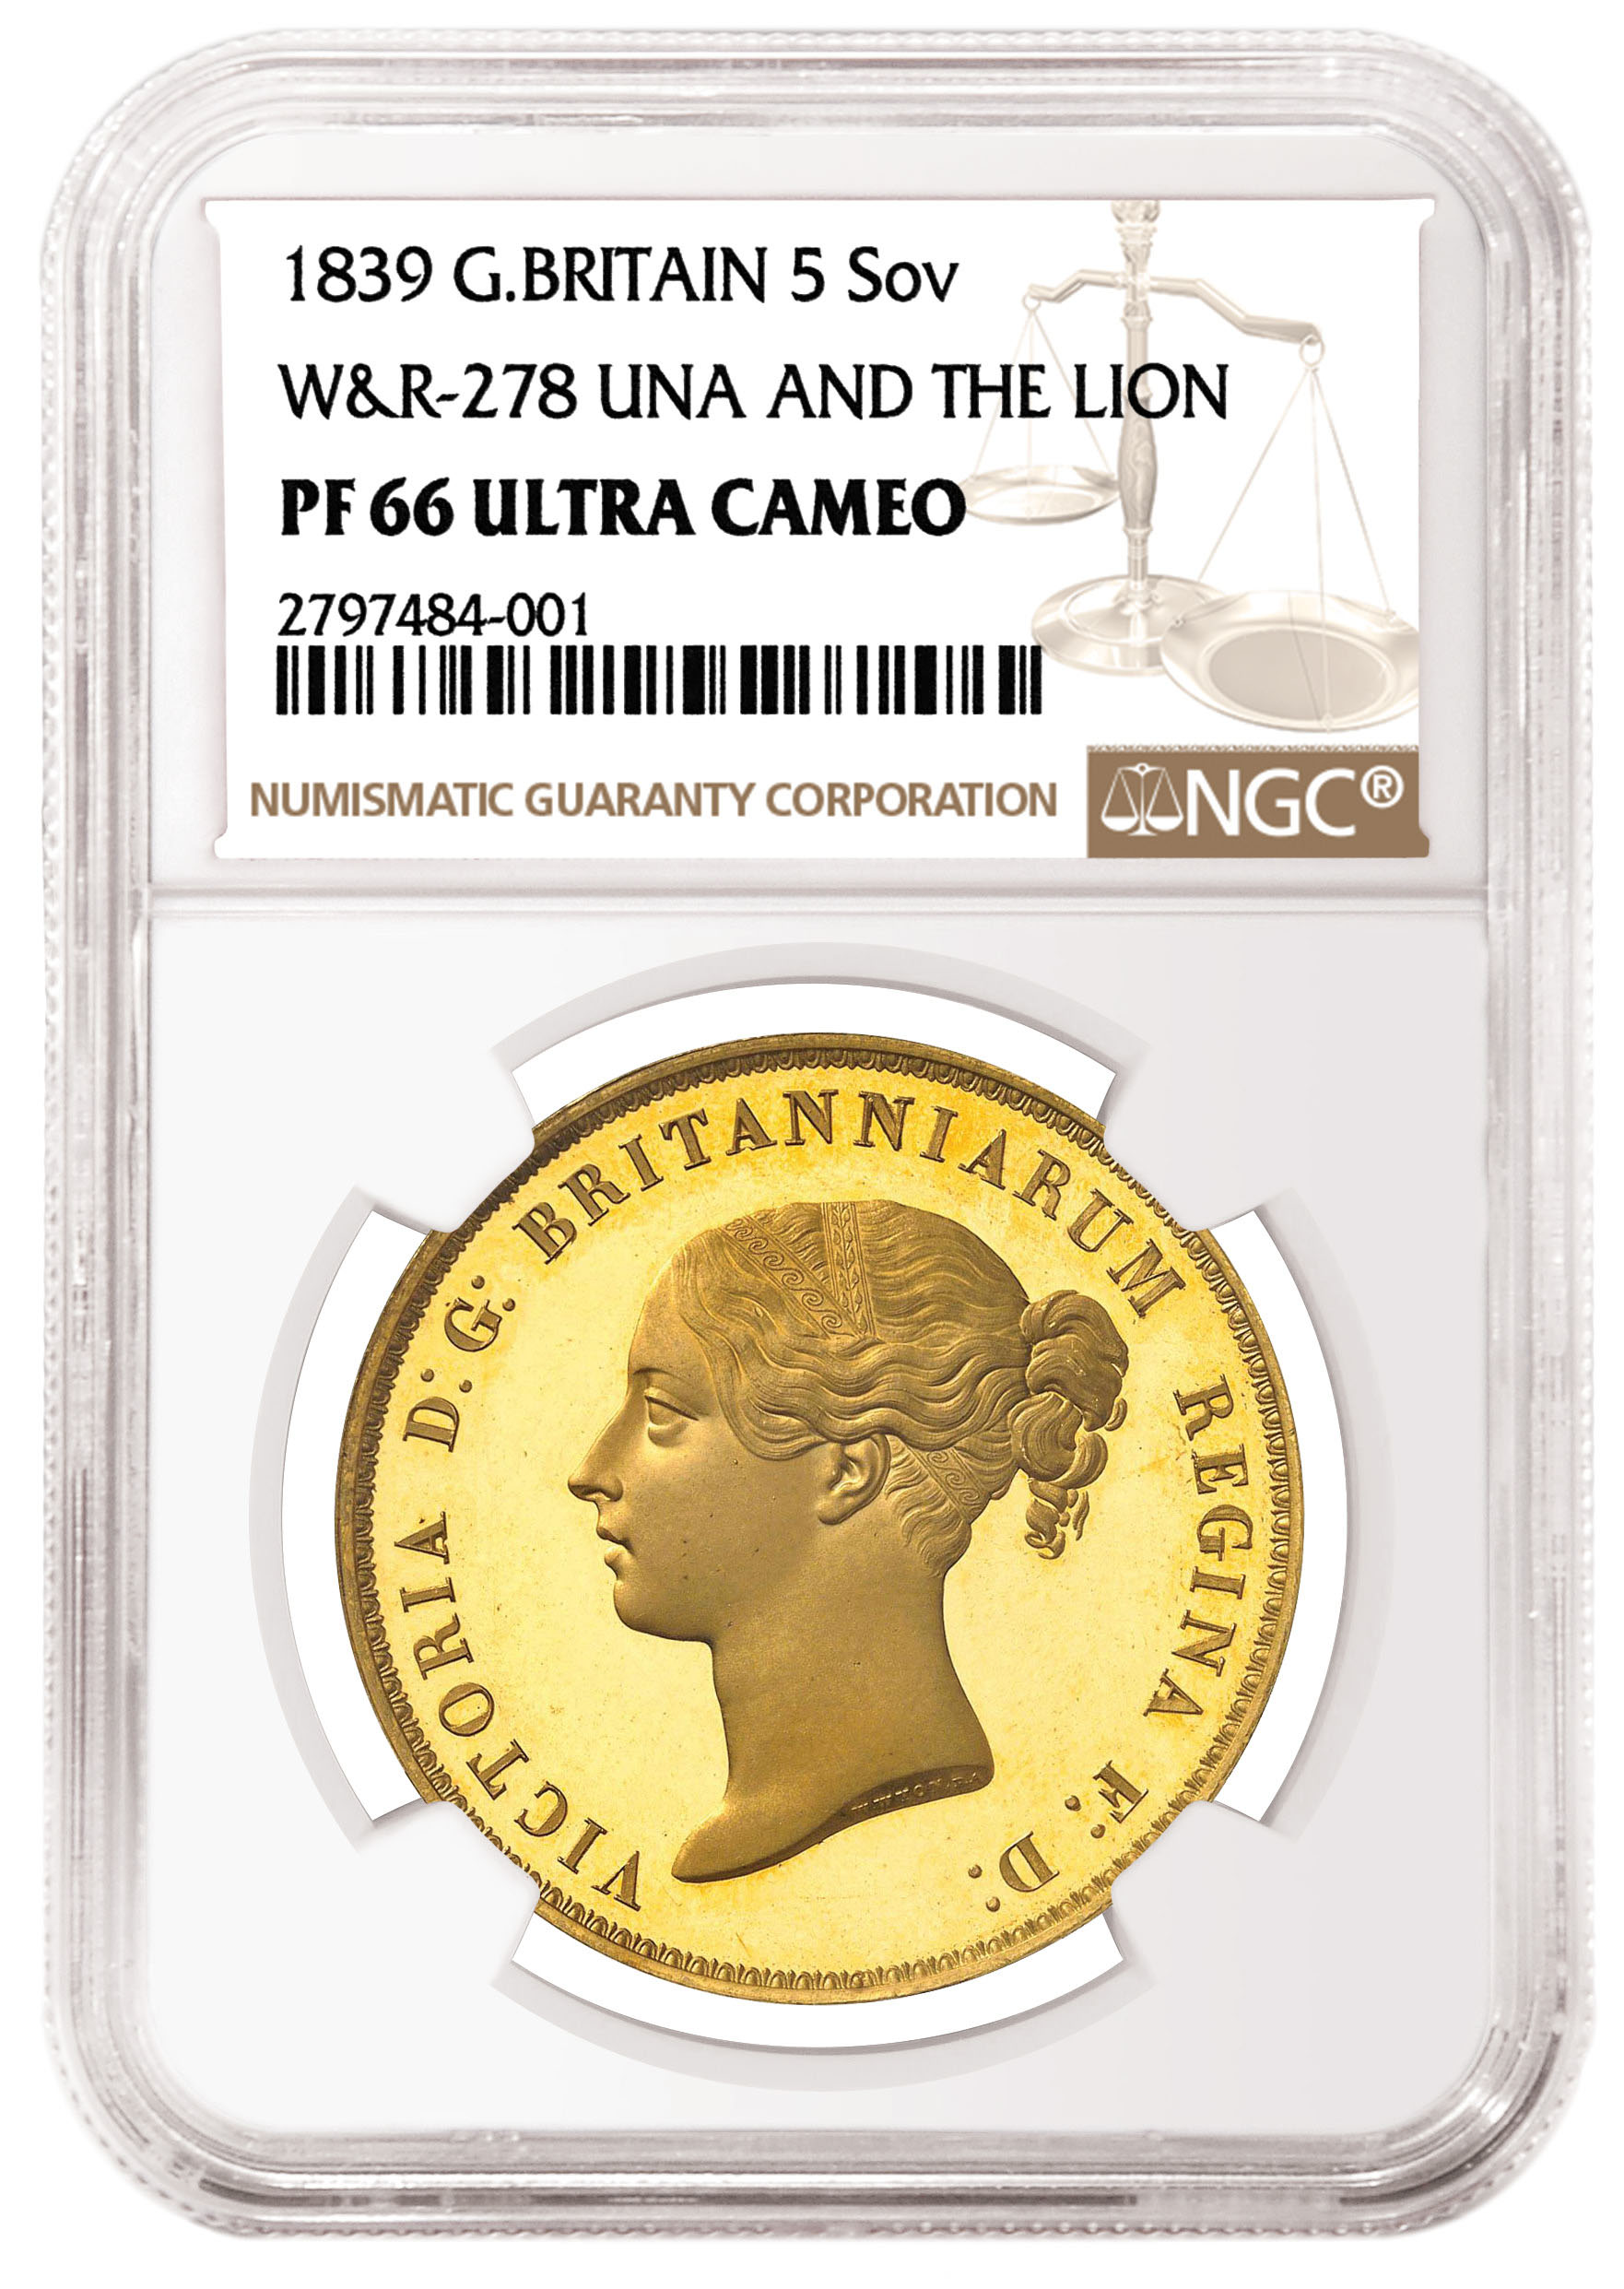 main image for Two NGC-certified British Coins Each Realize Over $1 Million to Set a New World Record